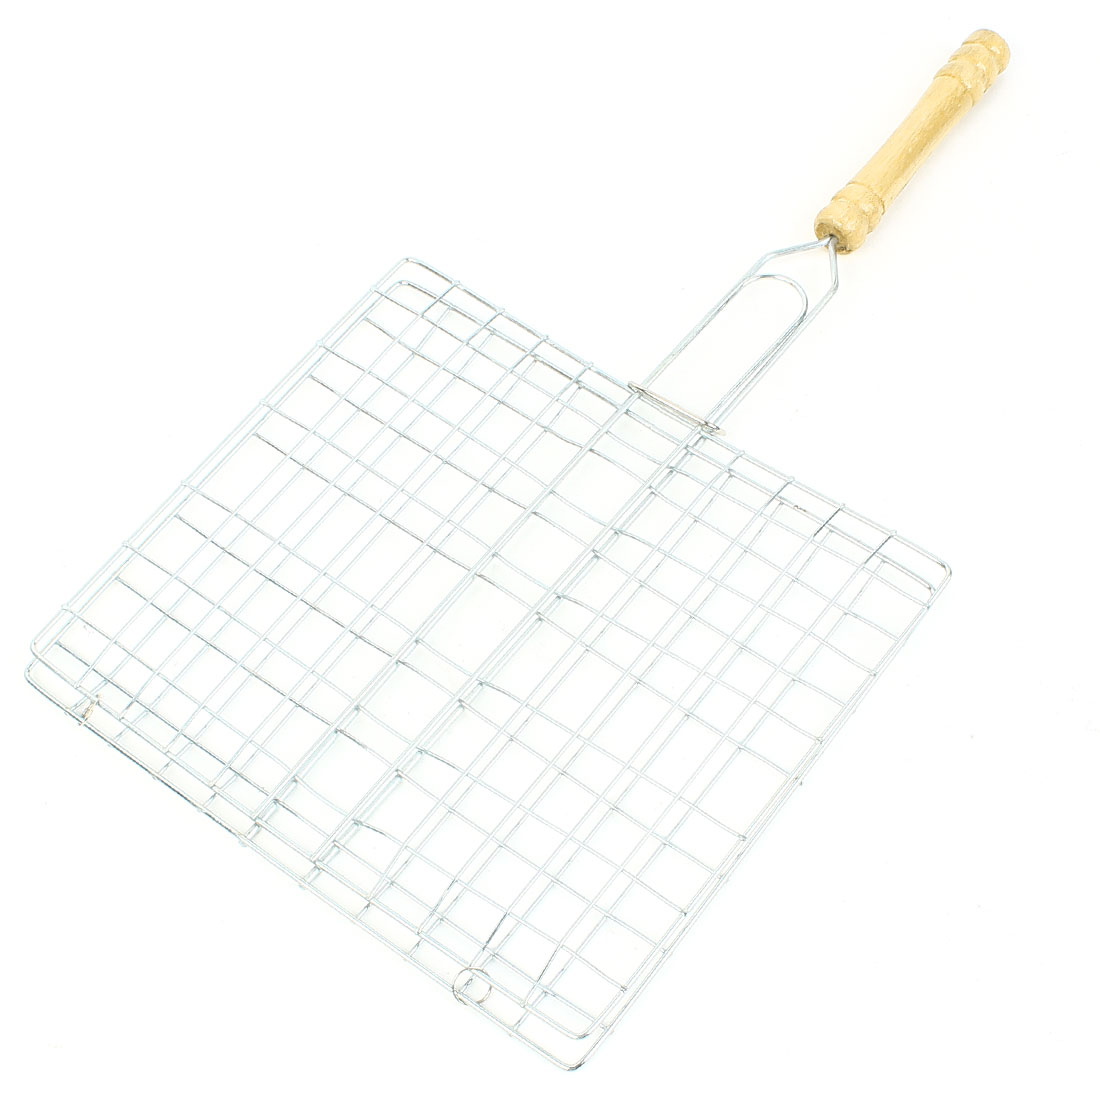 21.5 x 19 cm Outdoor Nonslip Wood Grip Rectangular Grill Net Barbecue Clamp